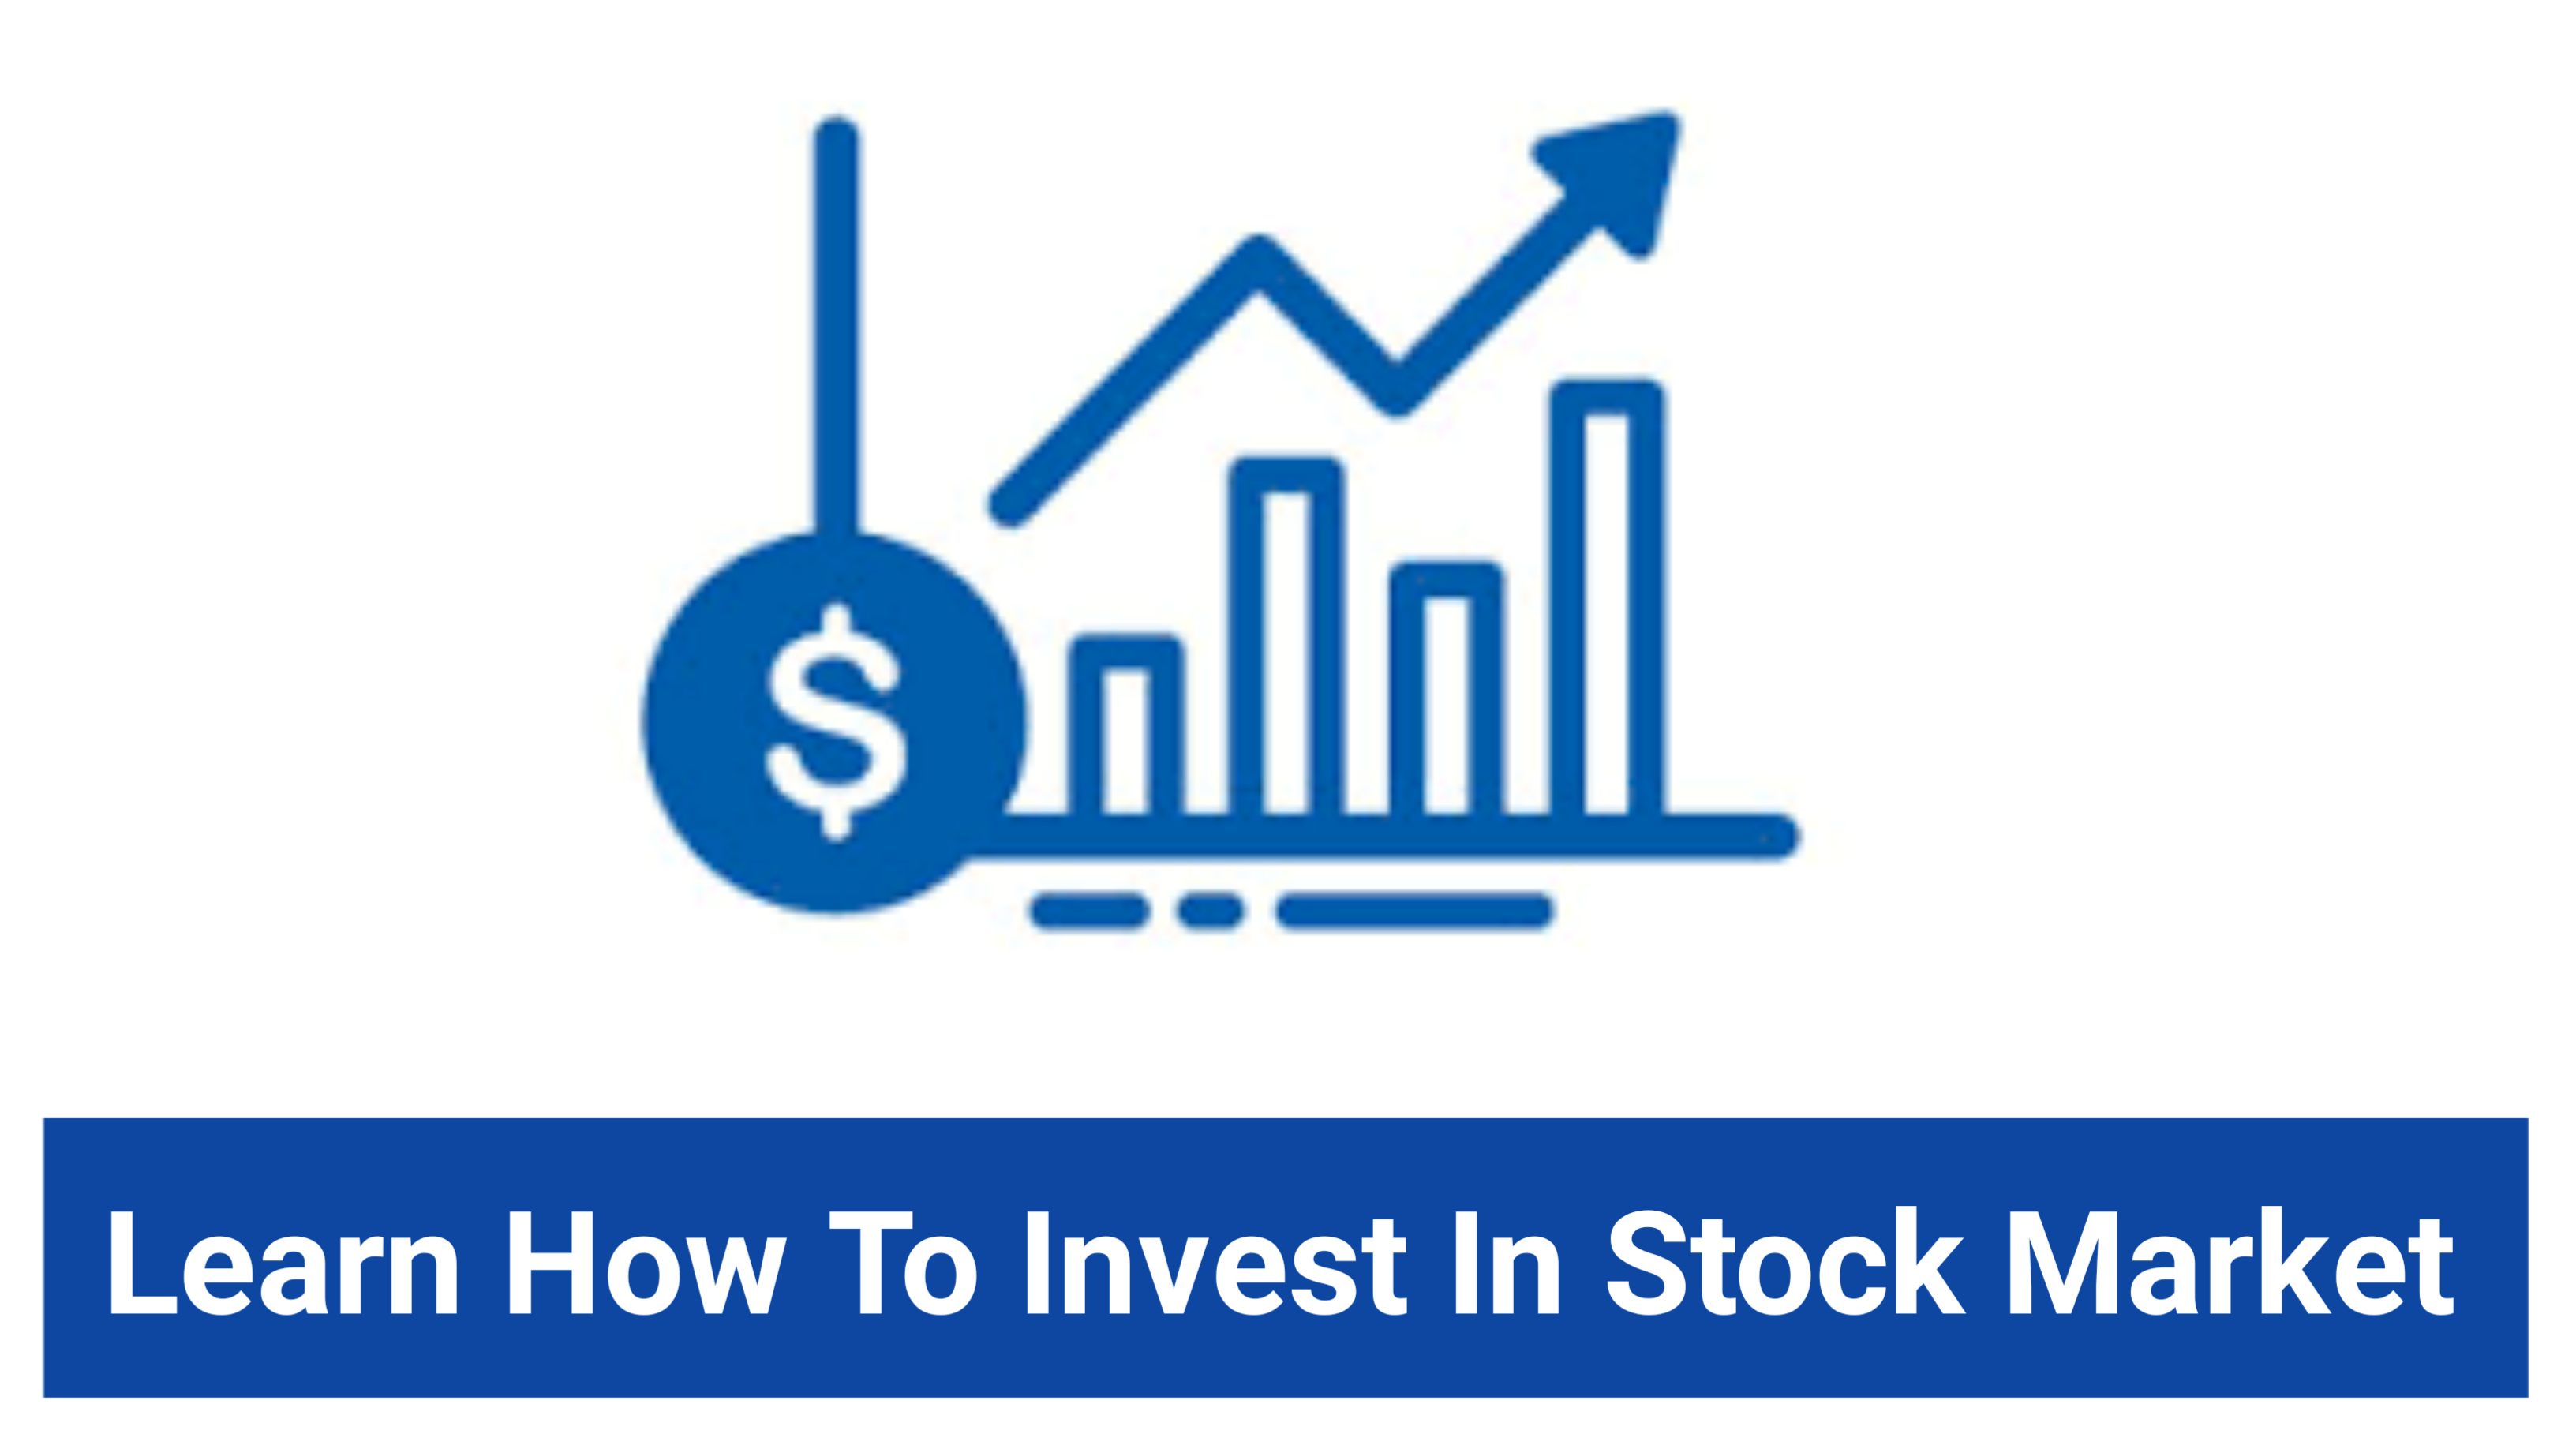 How To invest in Stock Market, How To invest in Stock Market In india, How To invest in Stock Market in india online, Learn How To invest in Stock Market.